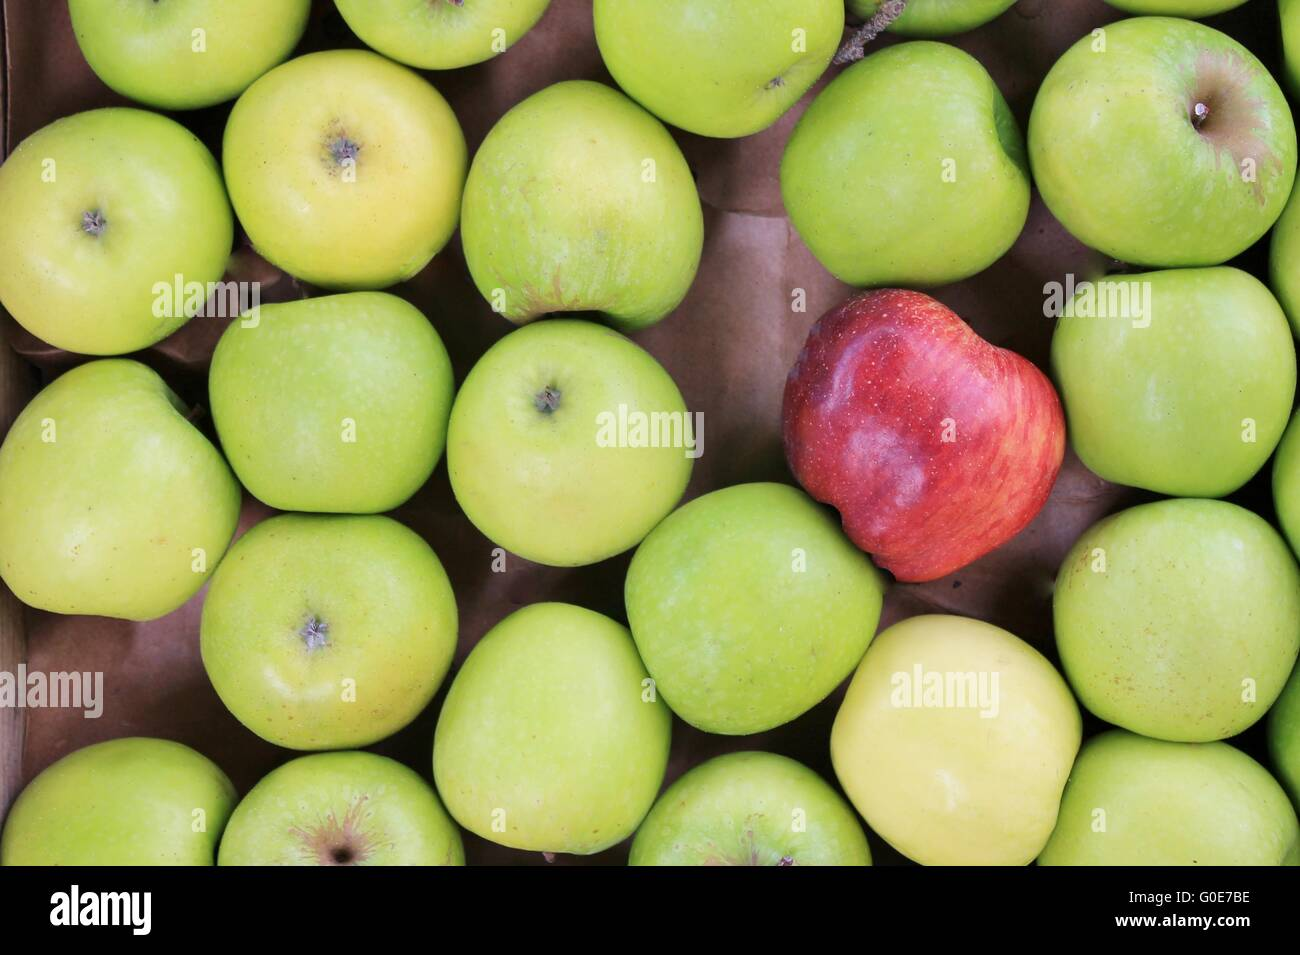 different concepts - red apple between green apple - Stock Image